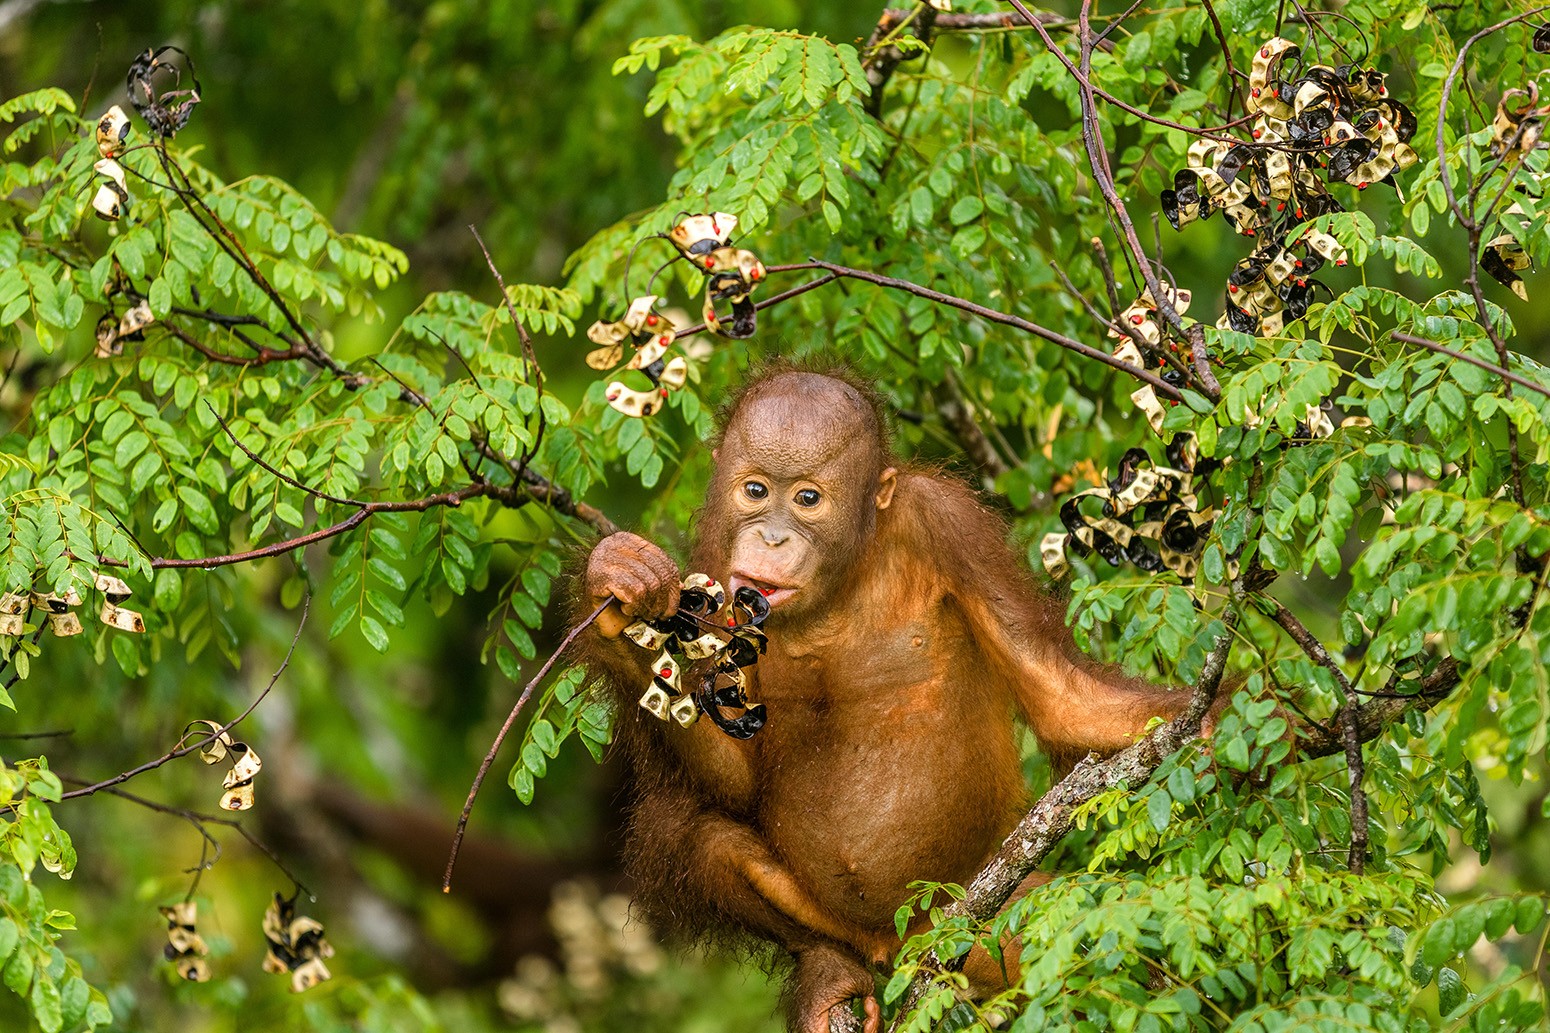 This Wild Young Male Orangutan Is Climbing The Rainforest